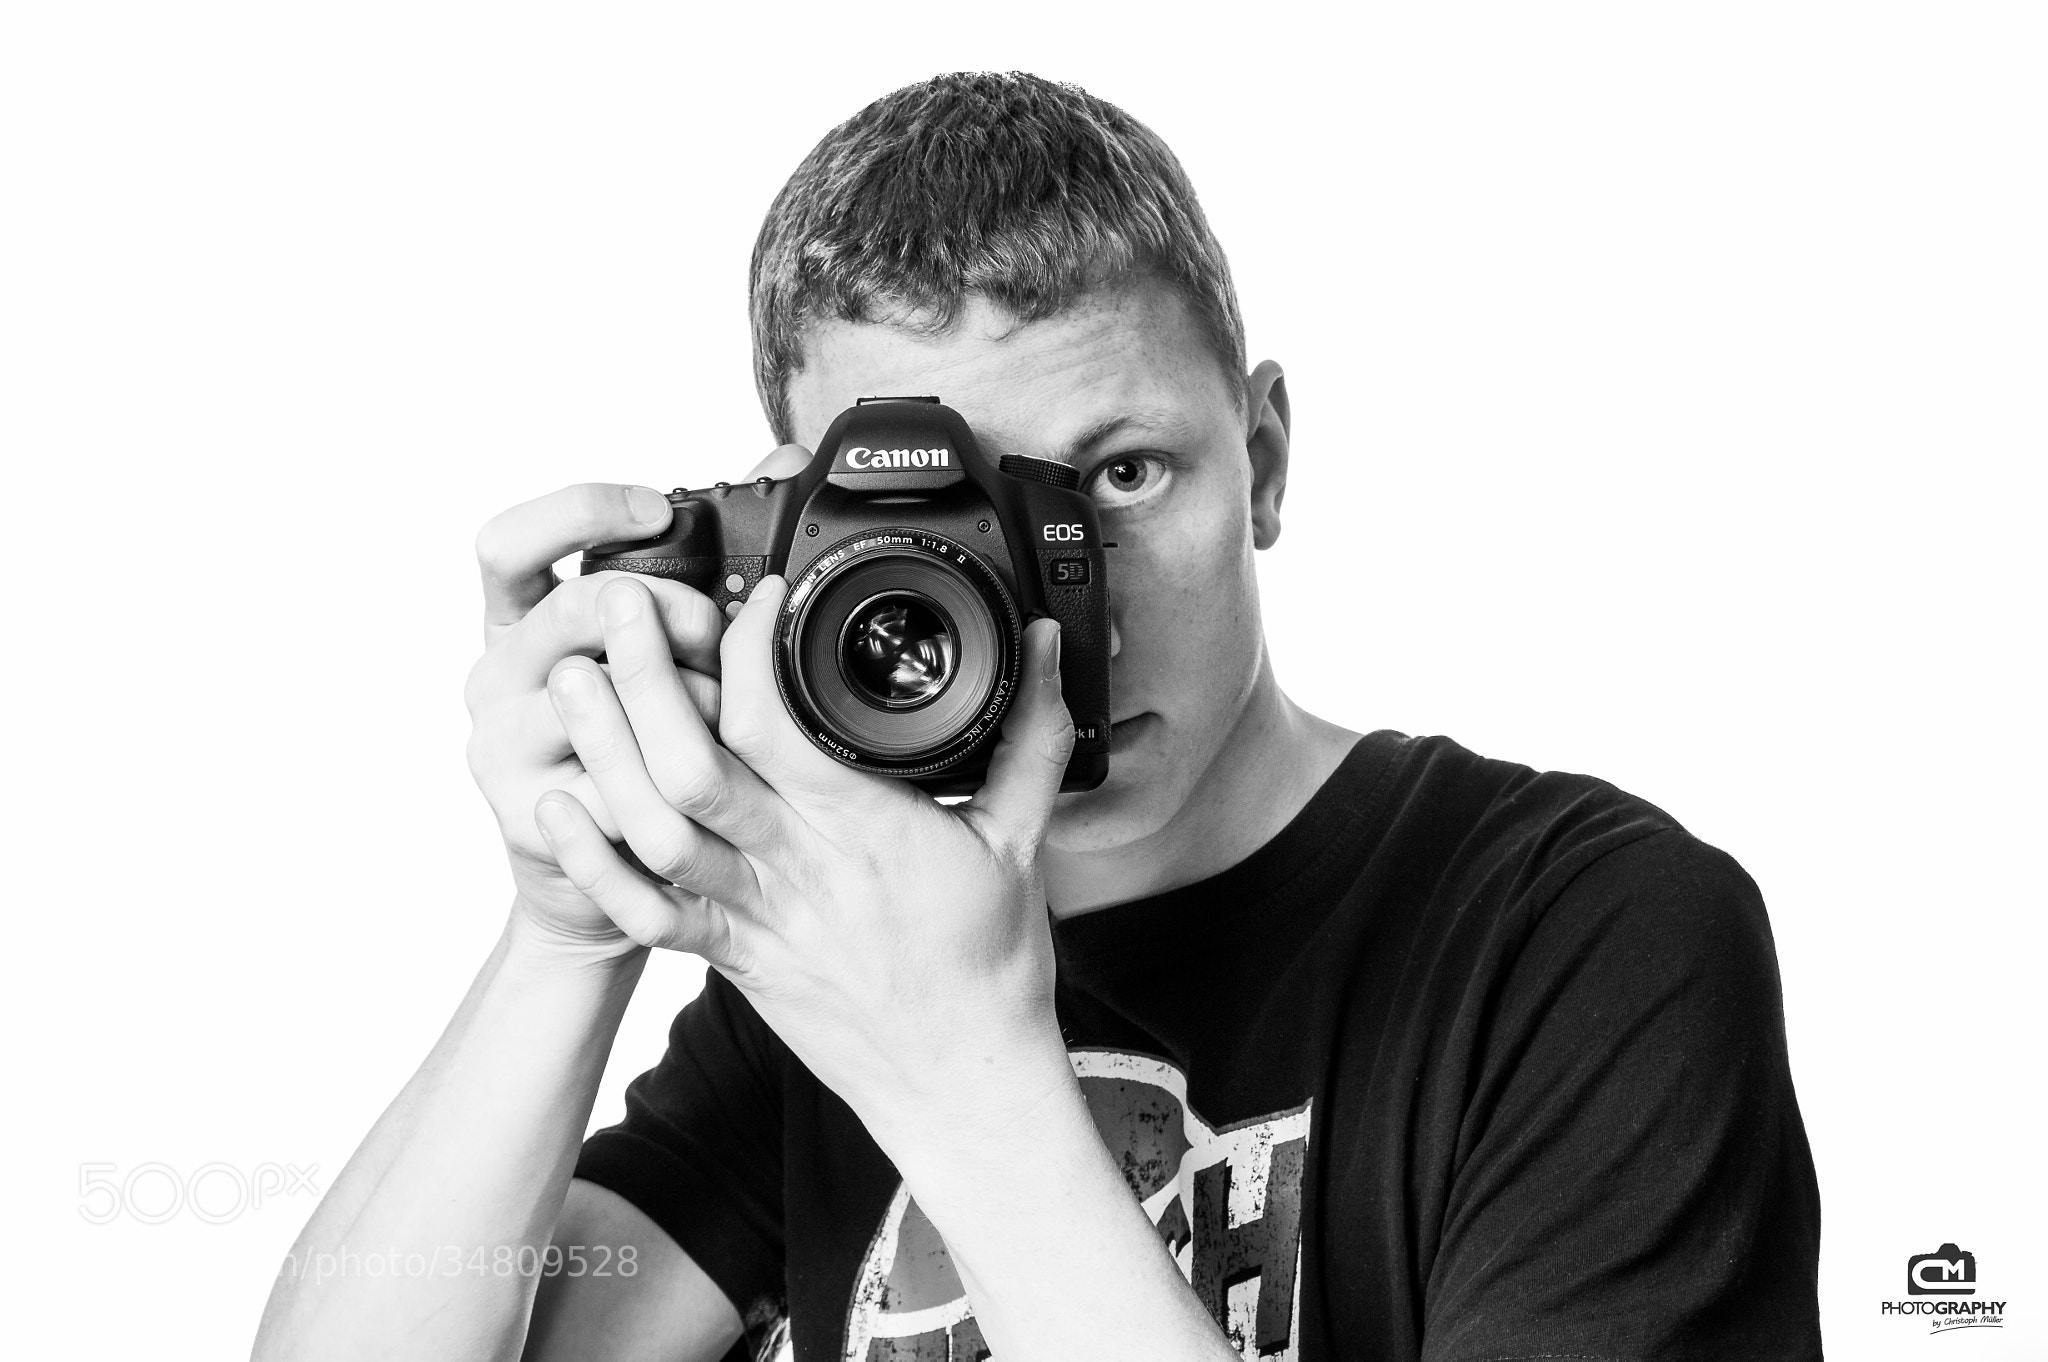 Photograph Me & my Canon 5D Mark II by Christoph Müller on 500px